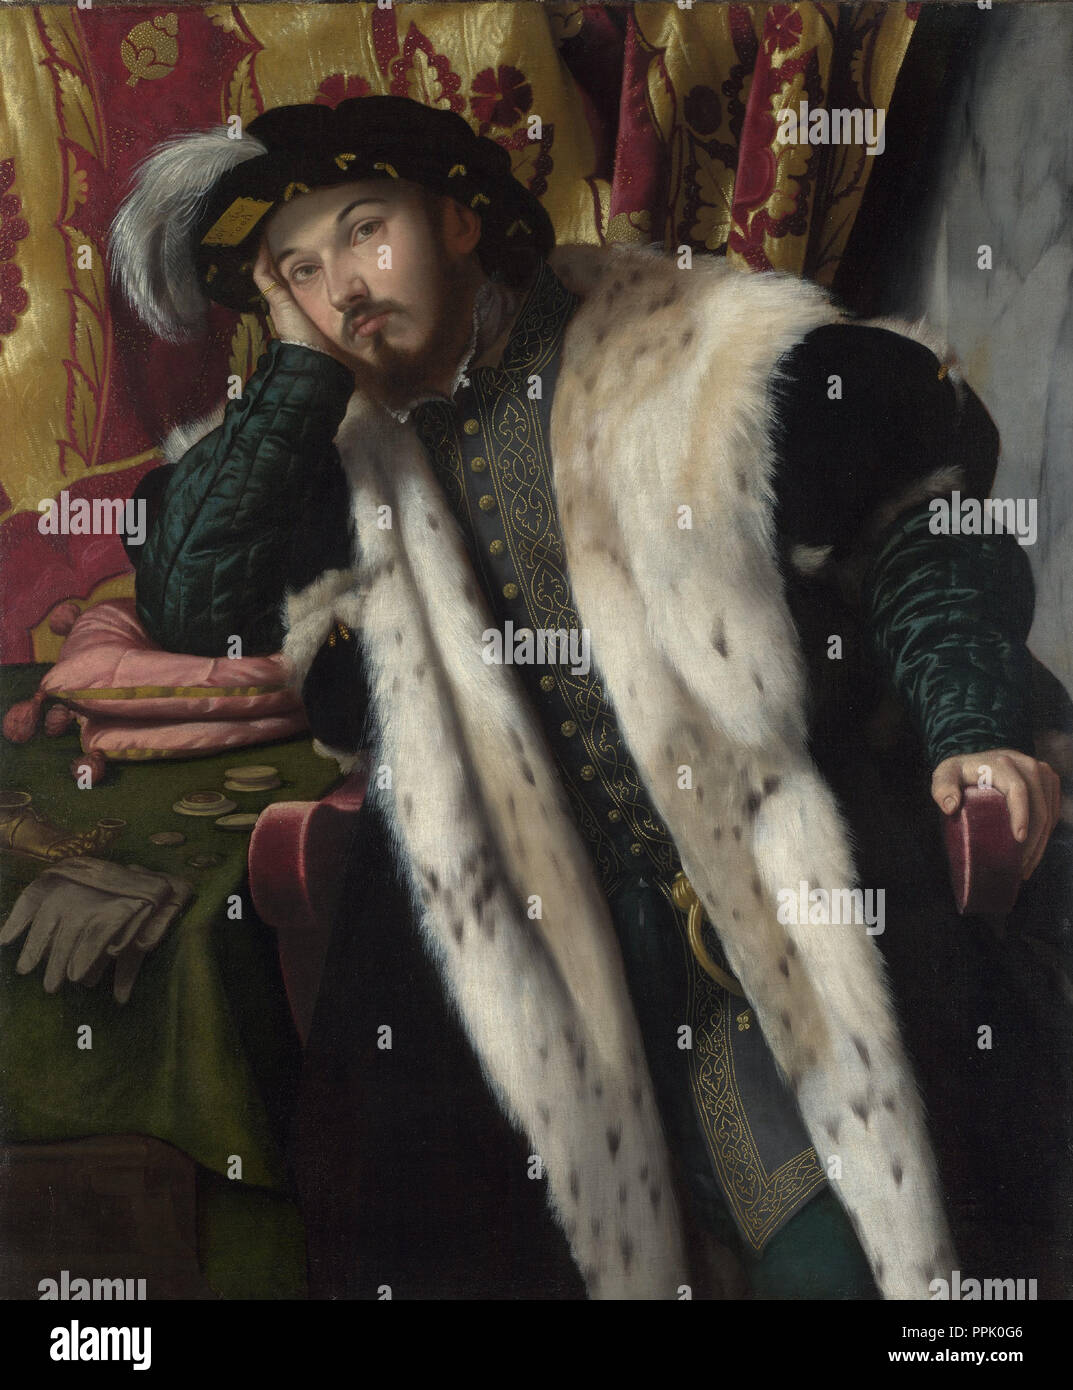 Portrait of Count Fortunato Martinengo Cesaresco (?). Date/Period: Between ca. 1540 and ca. 1542. Painting. Oil on canvas. Height: 114 cm (44.8 in); Width: 94.4 cm (37.1 in). Author: MORETTO DA BRESCIA. MORETTO DA BRESCIA, ALESSANDRO. - Stock Image